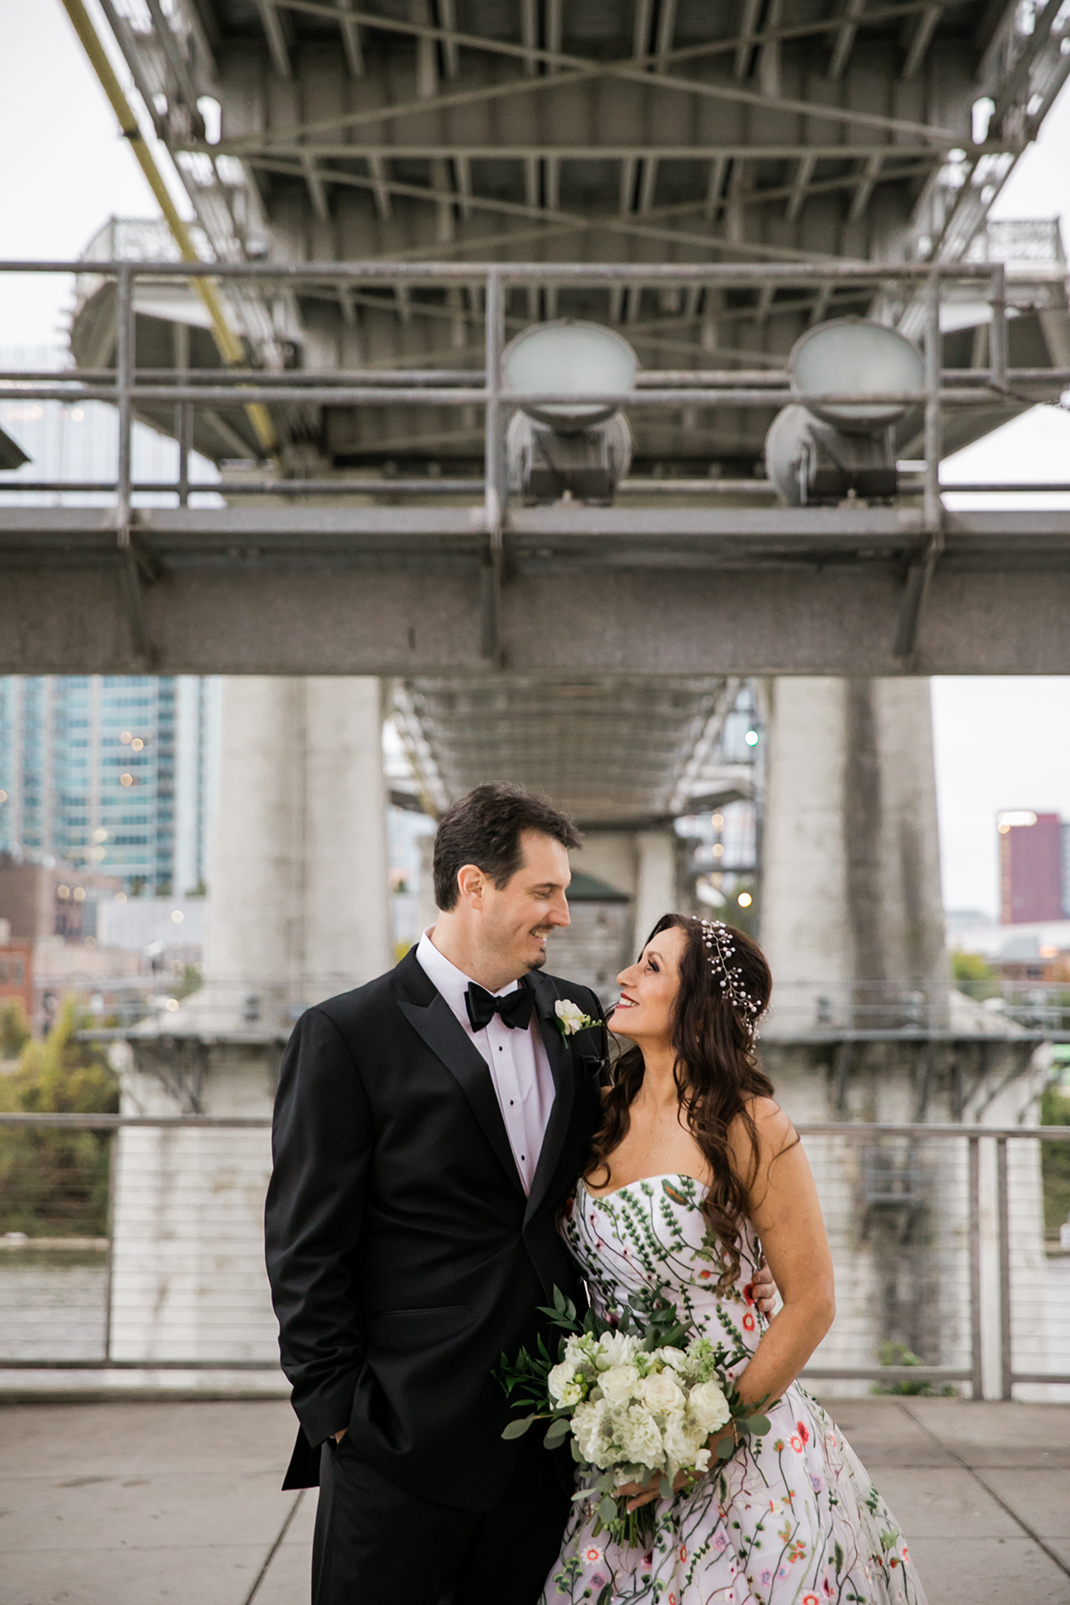 Tammy and Jeff's Nashville Wedding at The Bridge Building